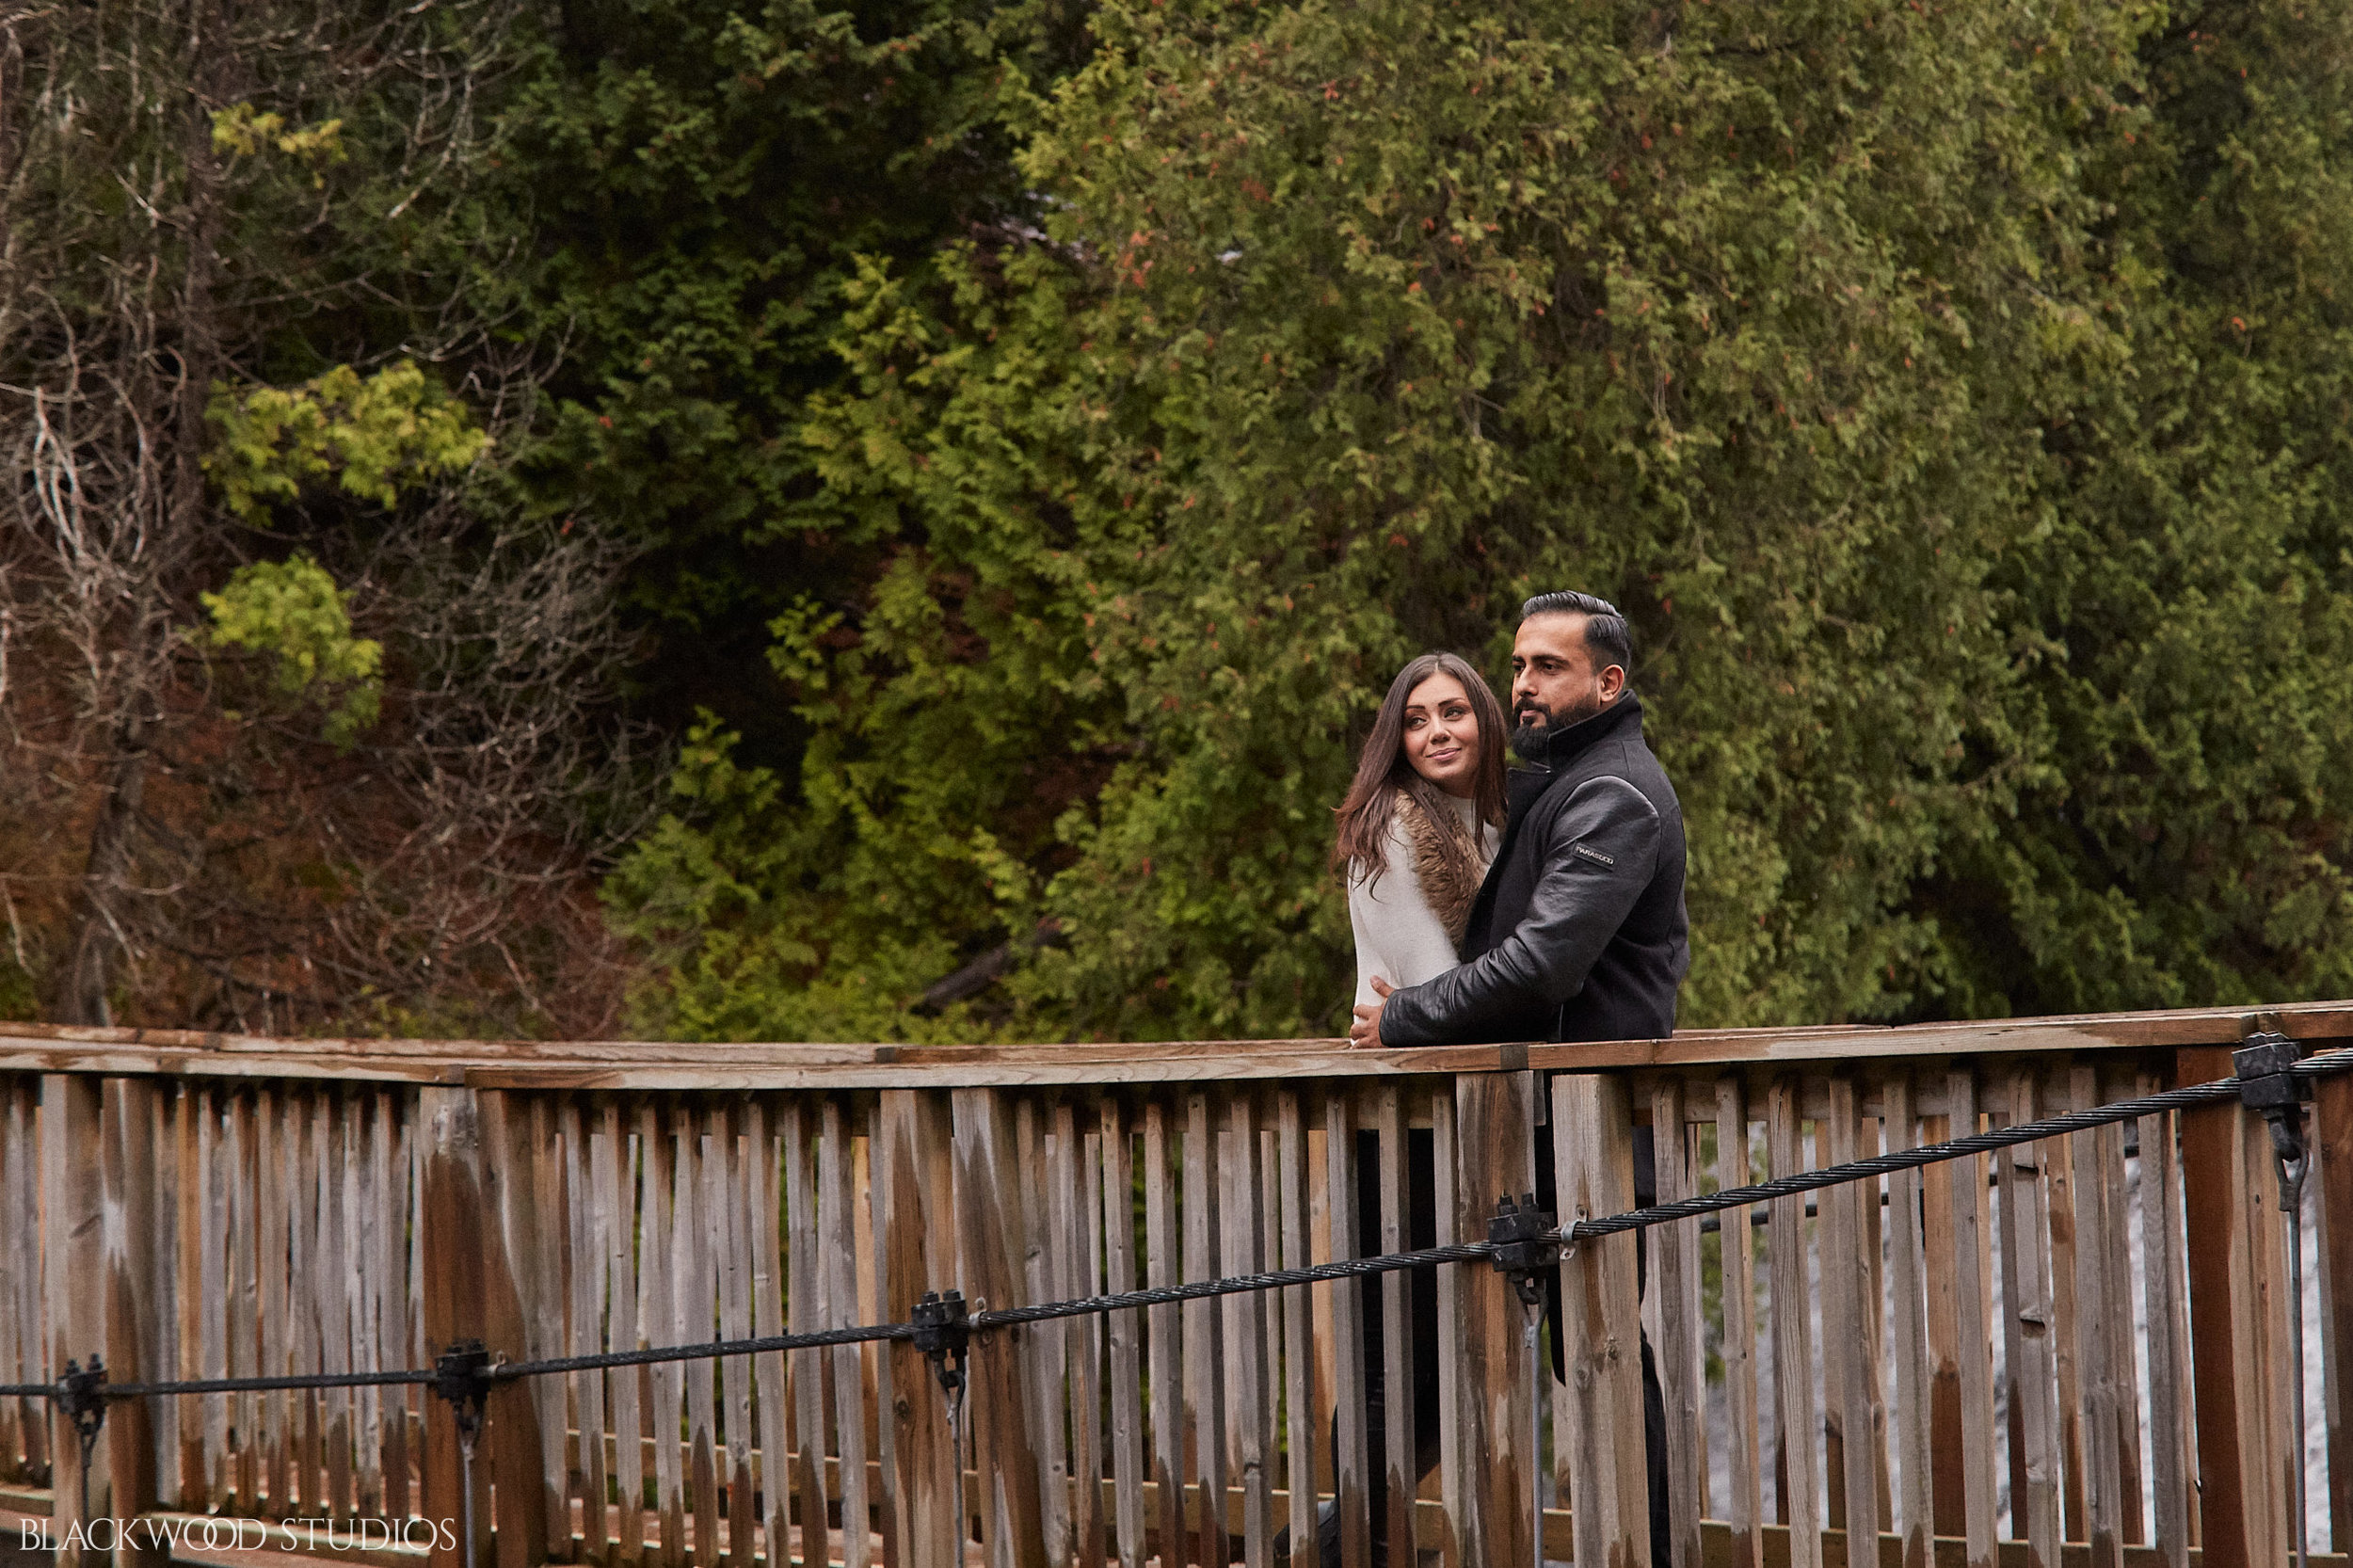 Blackwood-Studios-20181028173739-Farah-and-Zain-Engagement-photography-Belfountain-Conservation-Area-Caledon-Ontario.jpg